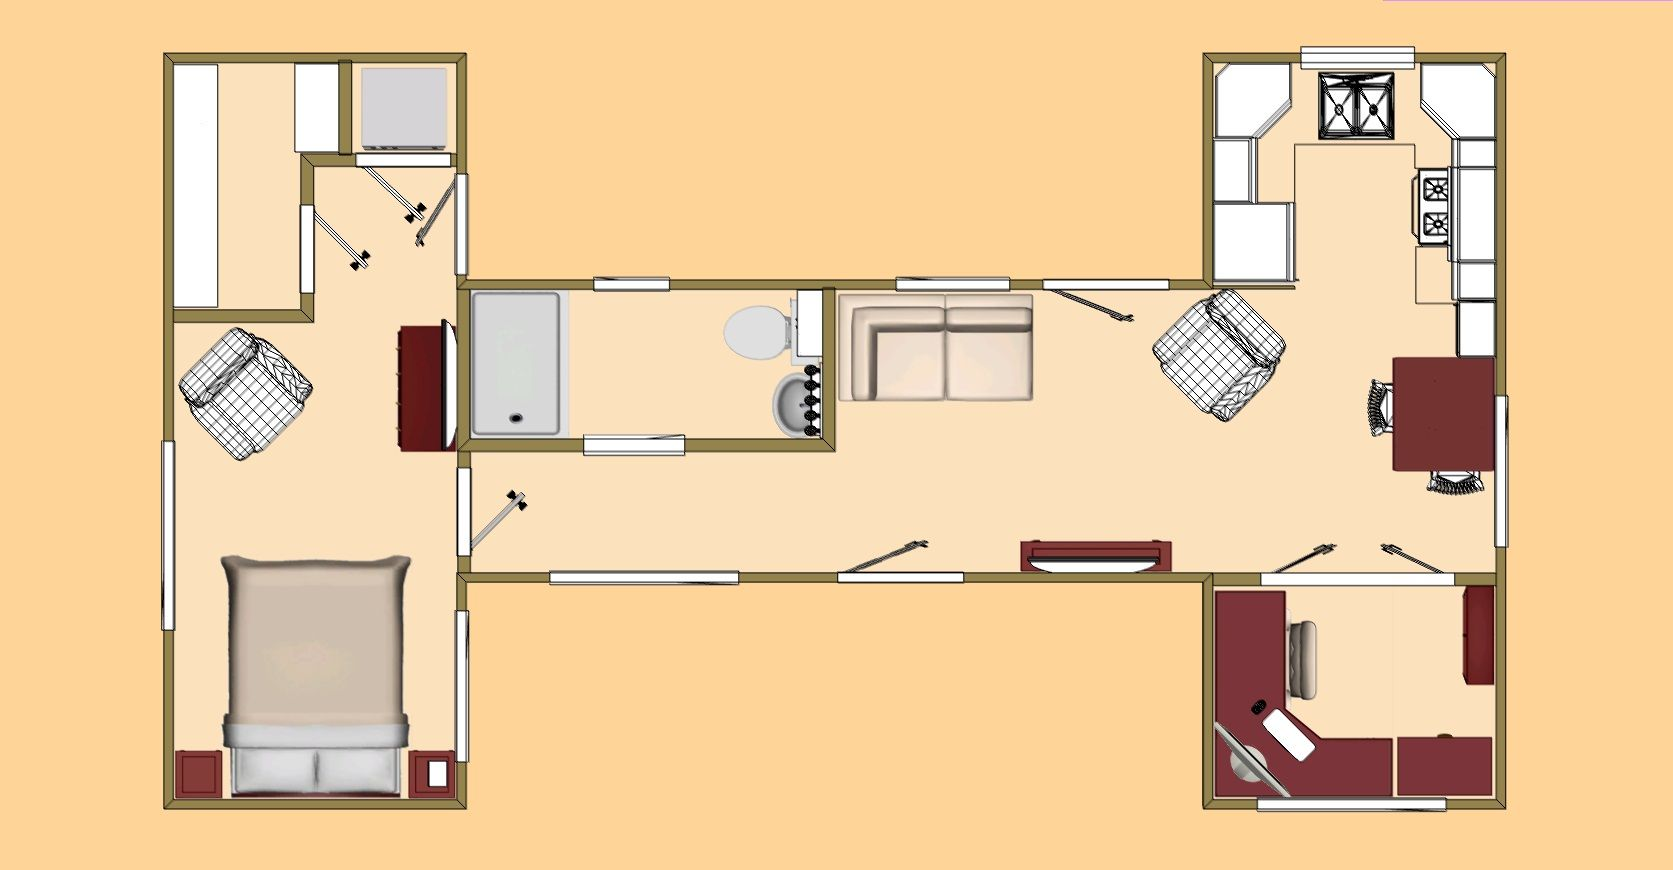 Best Kitchen Gallery: The Big H Floor Plan A 480 Sq Ft Shipping Container Design of Shipping Container Floor Plan Designs on rachelxblog.com